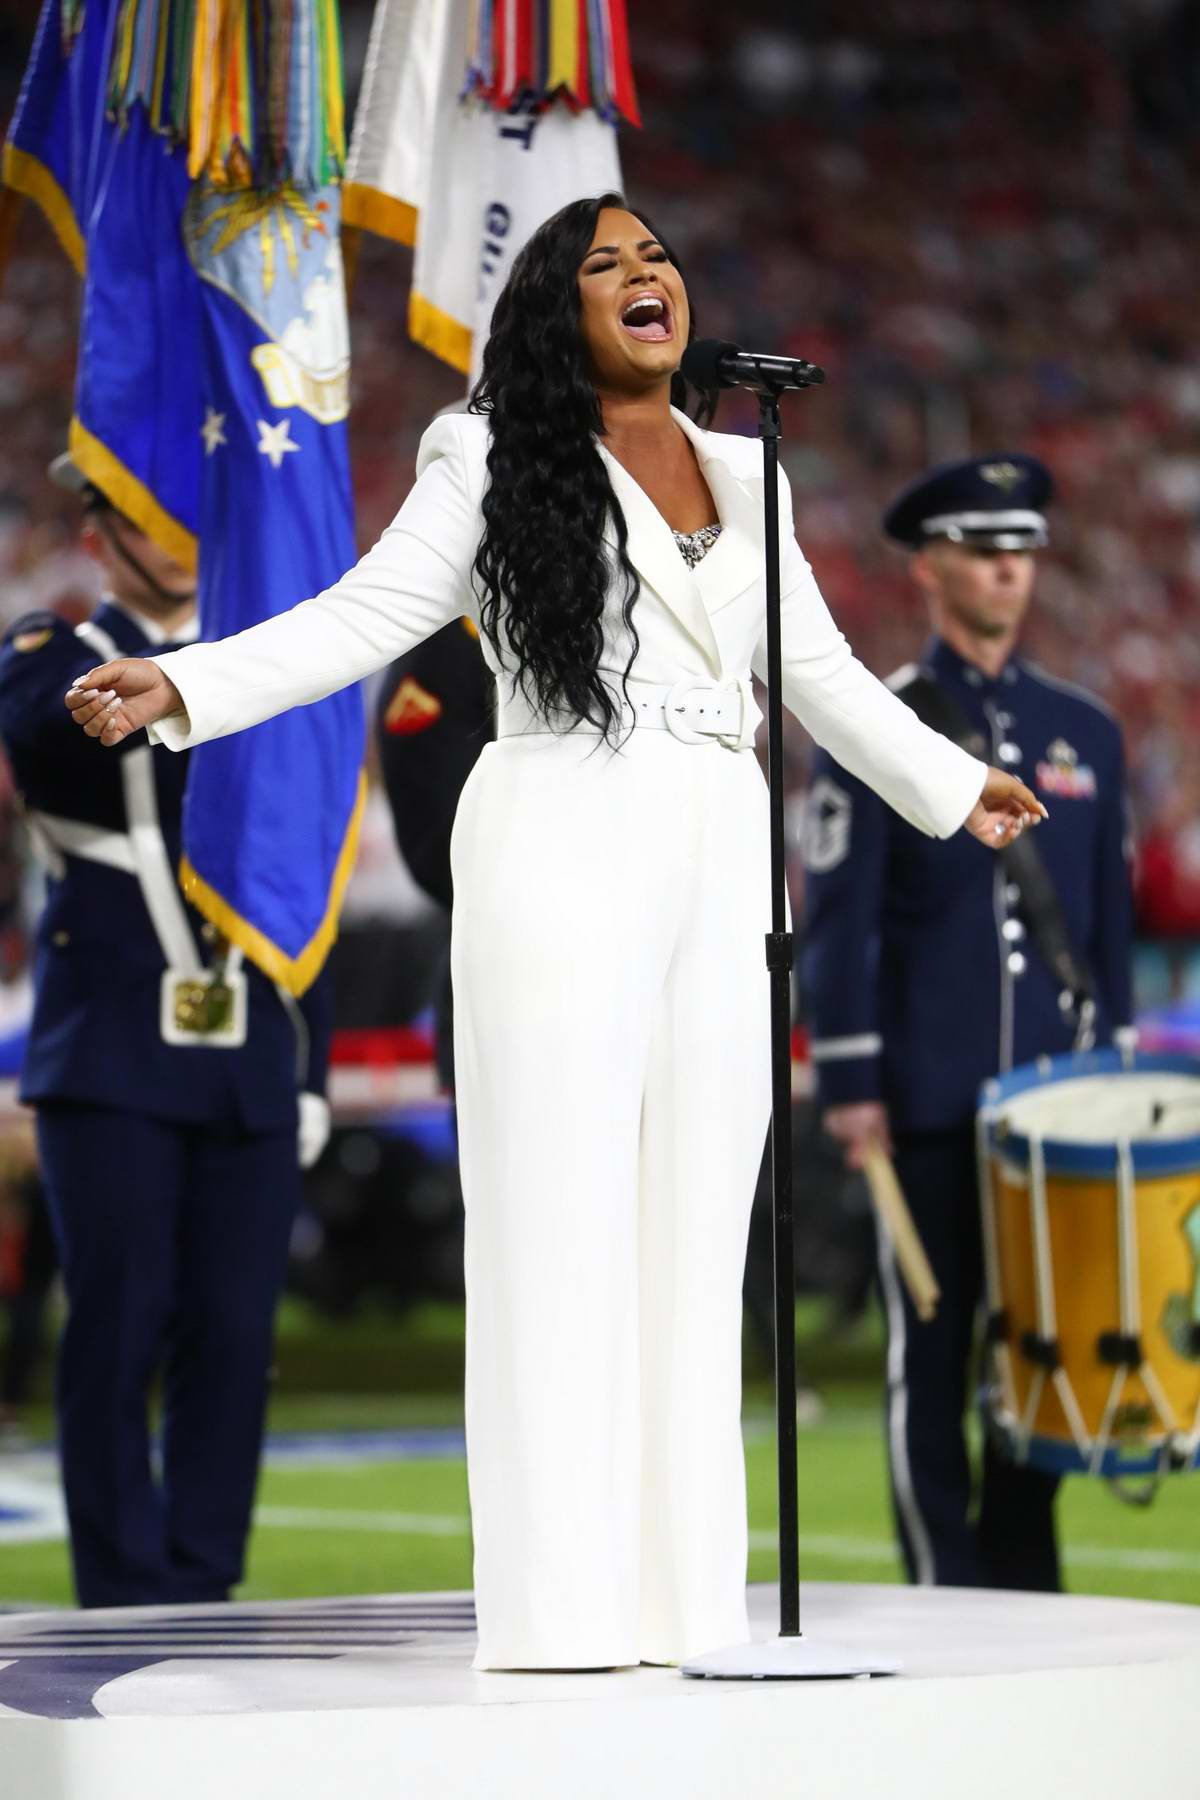 Demi Lovato sings the US National Anthem during Super Bowl LIV in Miami, Florida